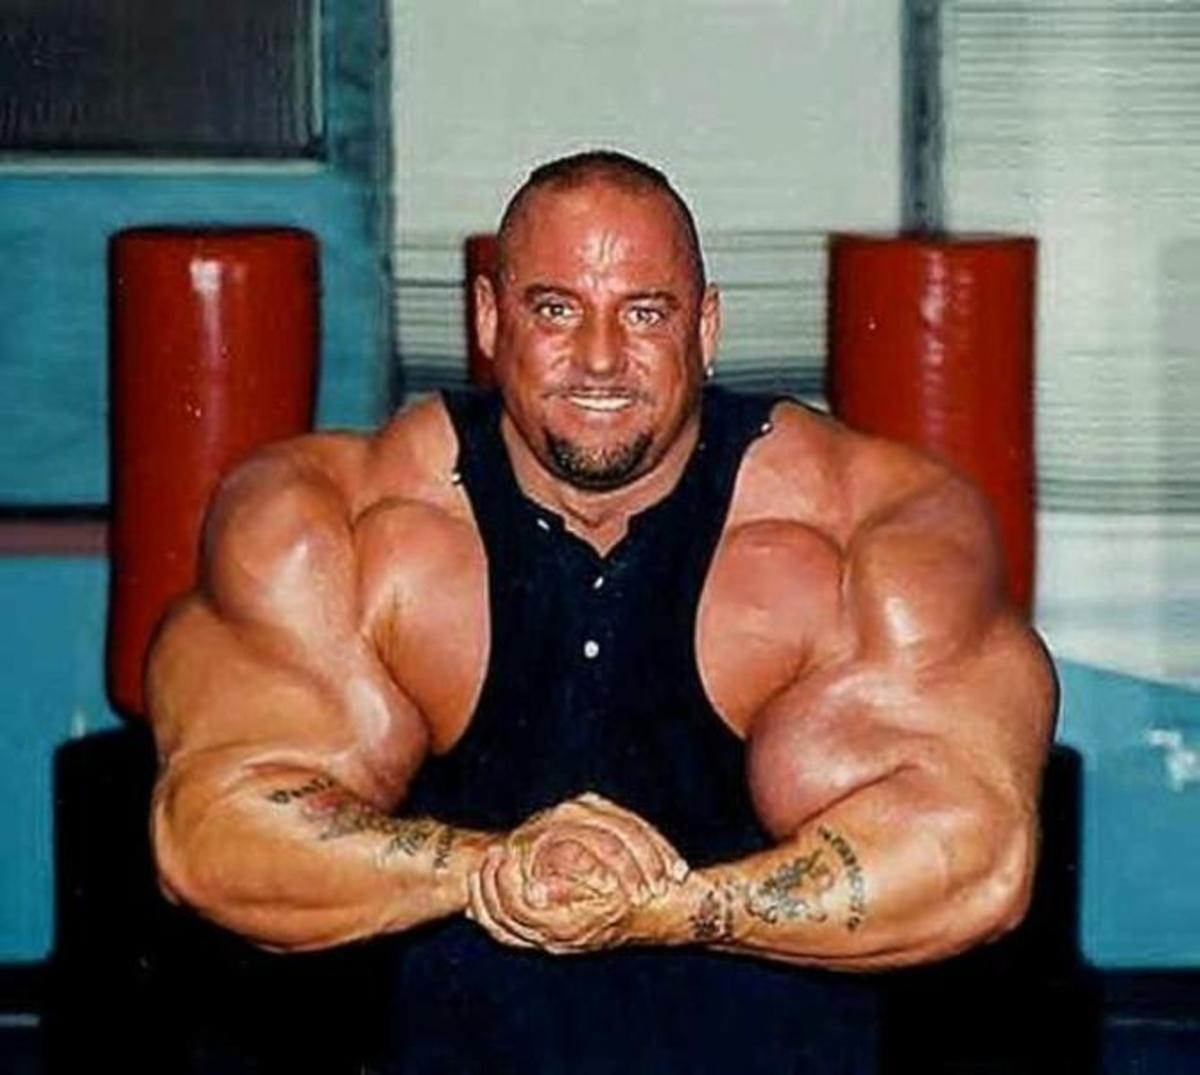 There is zero chance you will look like this guy without weights, but I'm sure most of you are okay with that anyway.